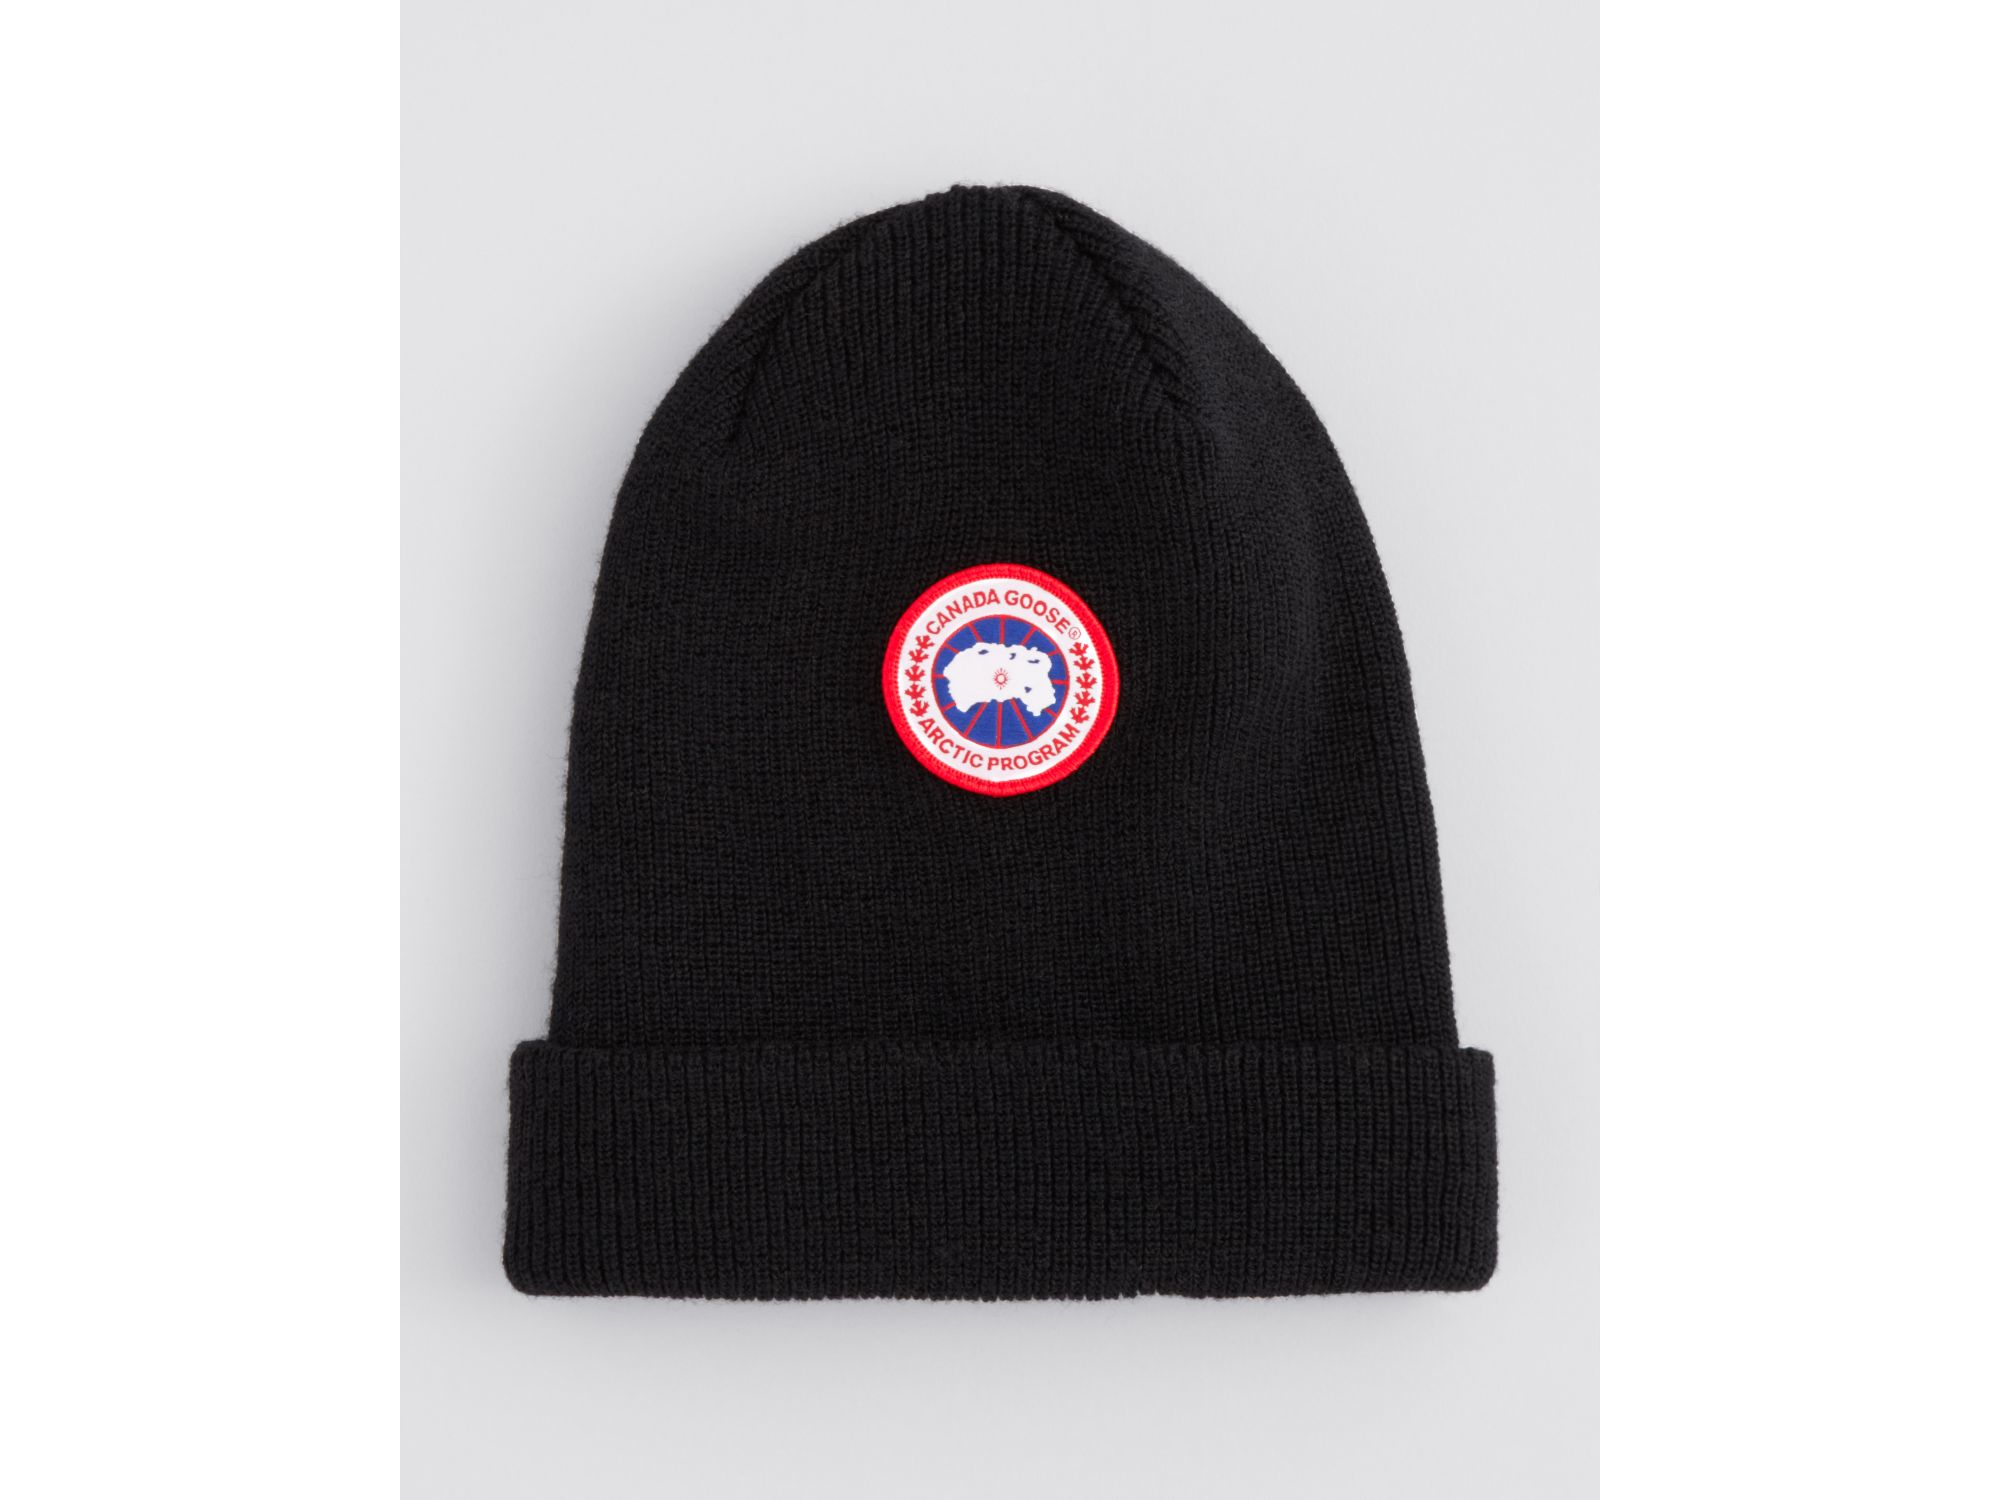 Lyst - Canada Goose Merino Wool Watch Cap in Black for Men ae93fac10dd